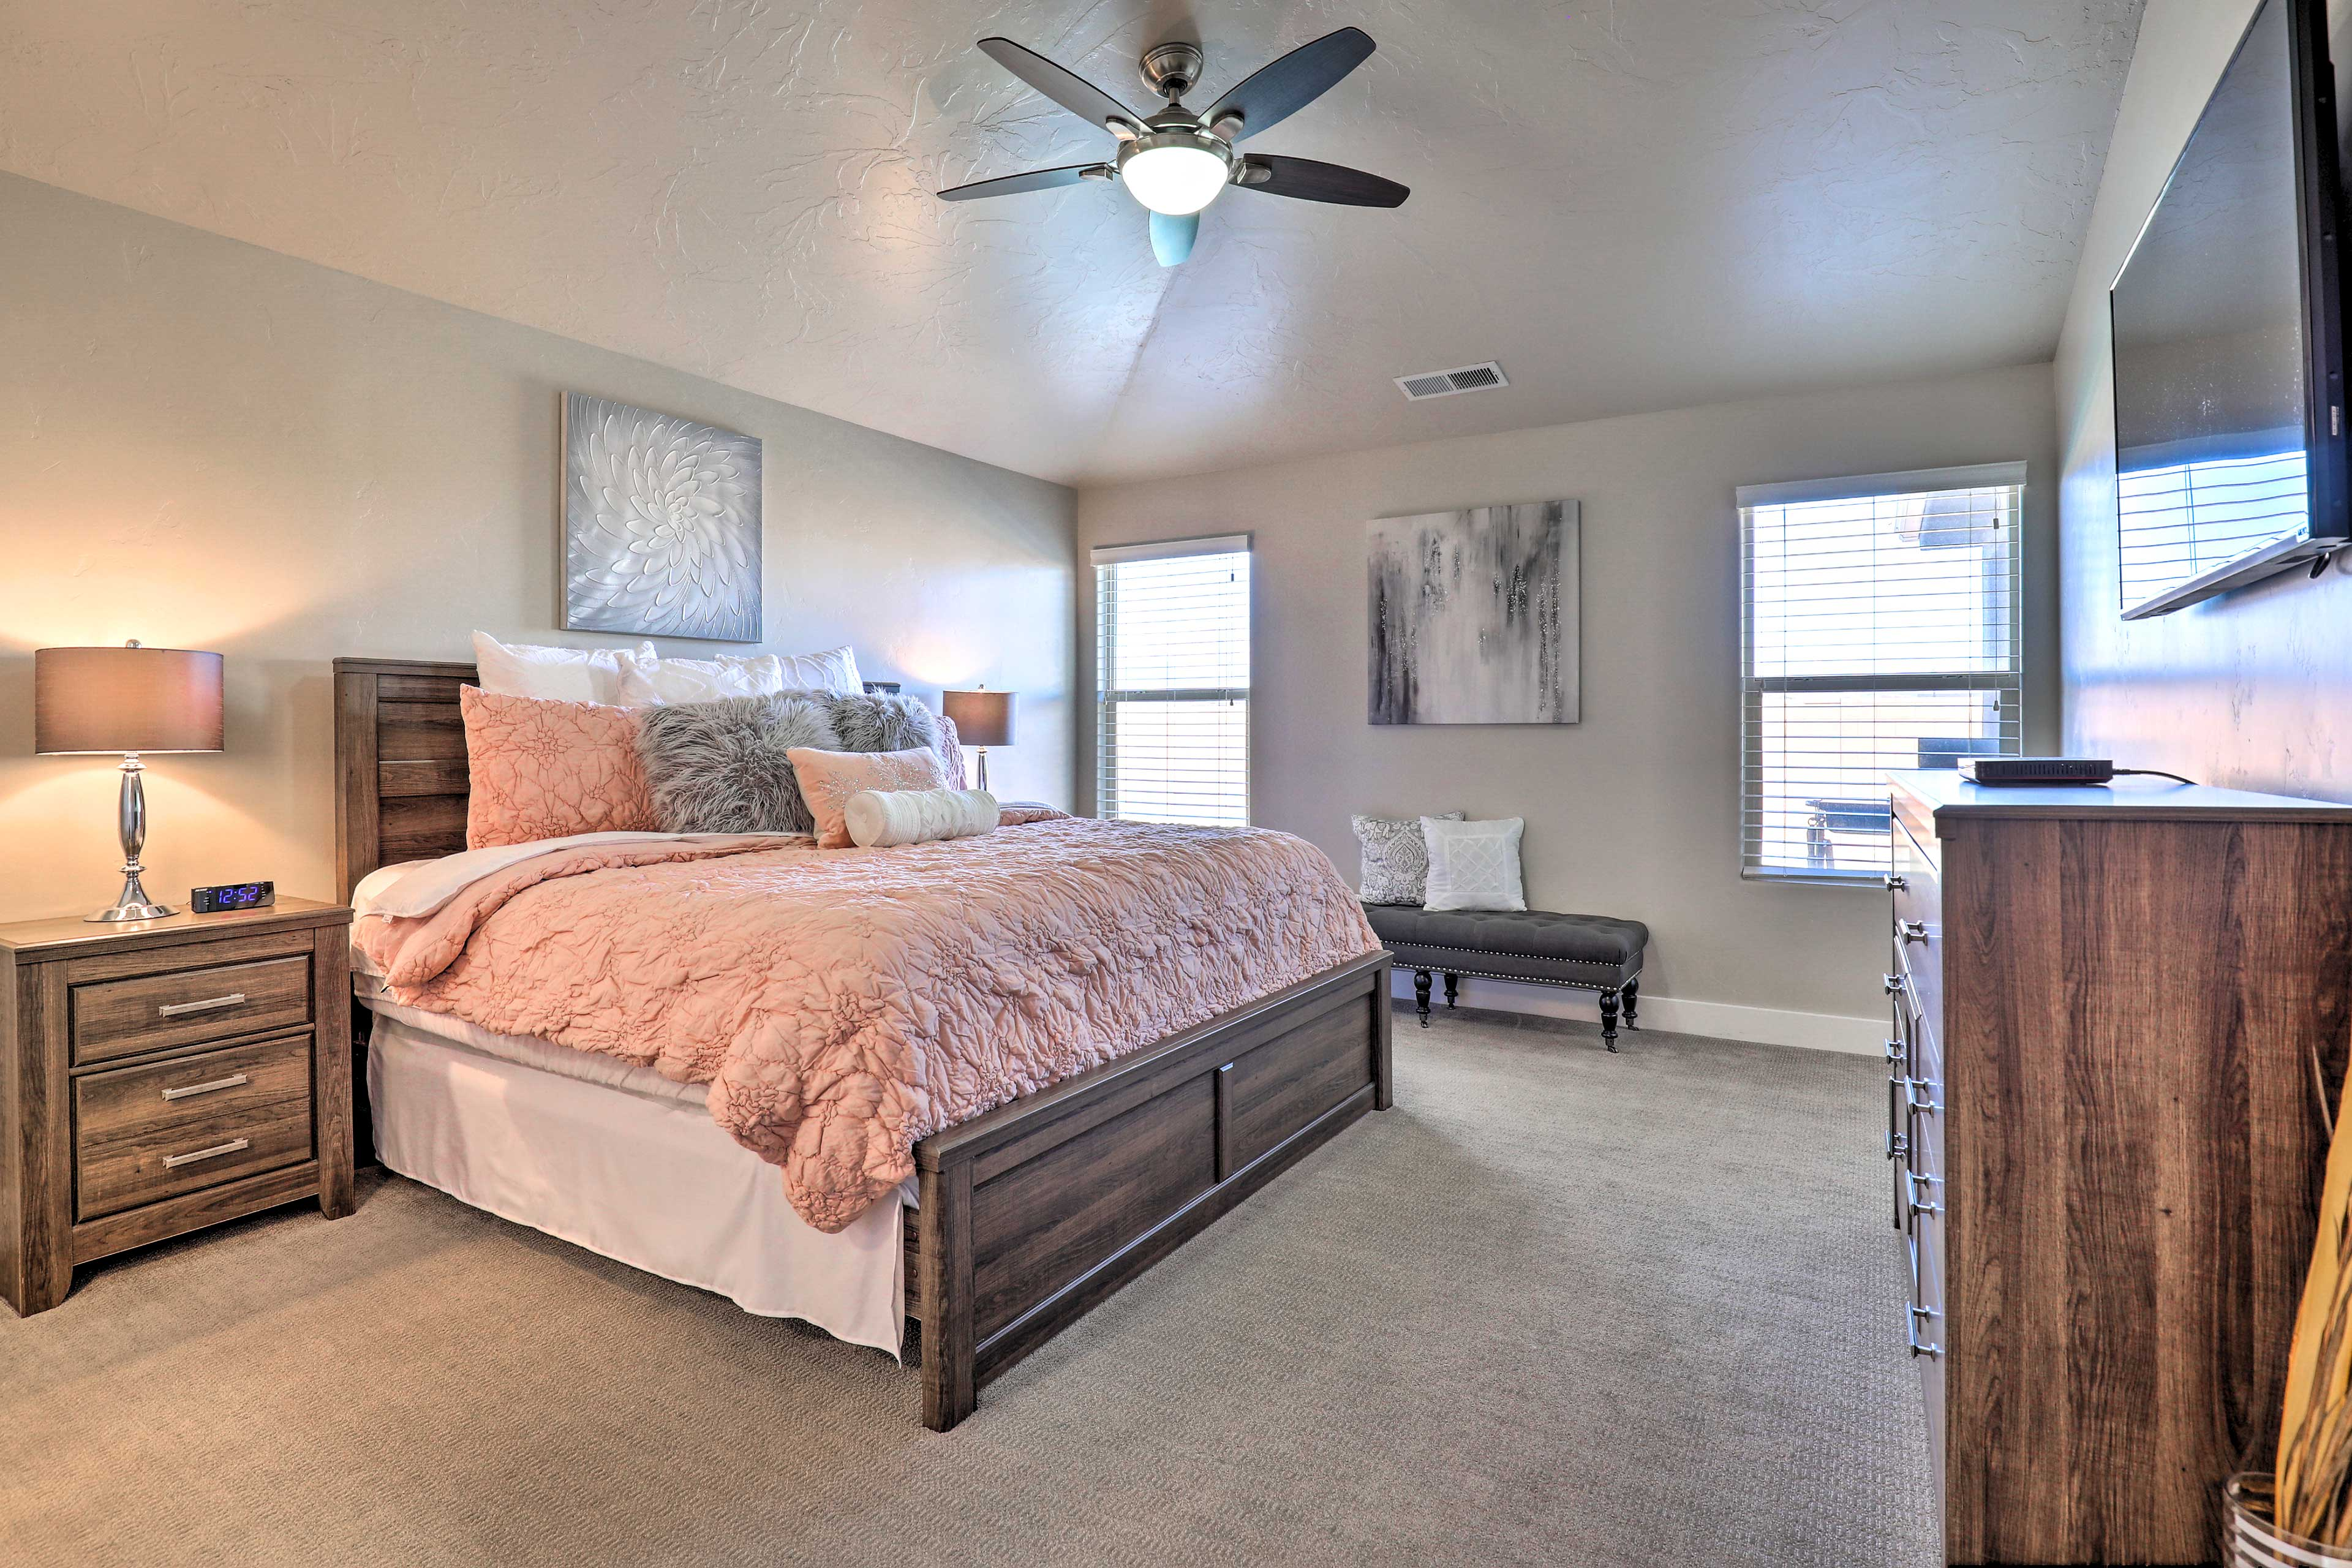 The master bedroom features a cozy king bed.